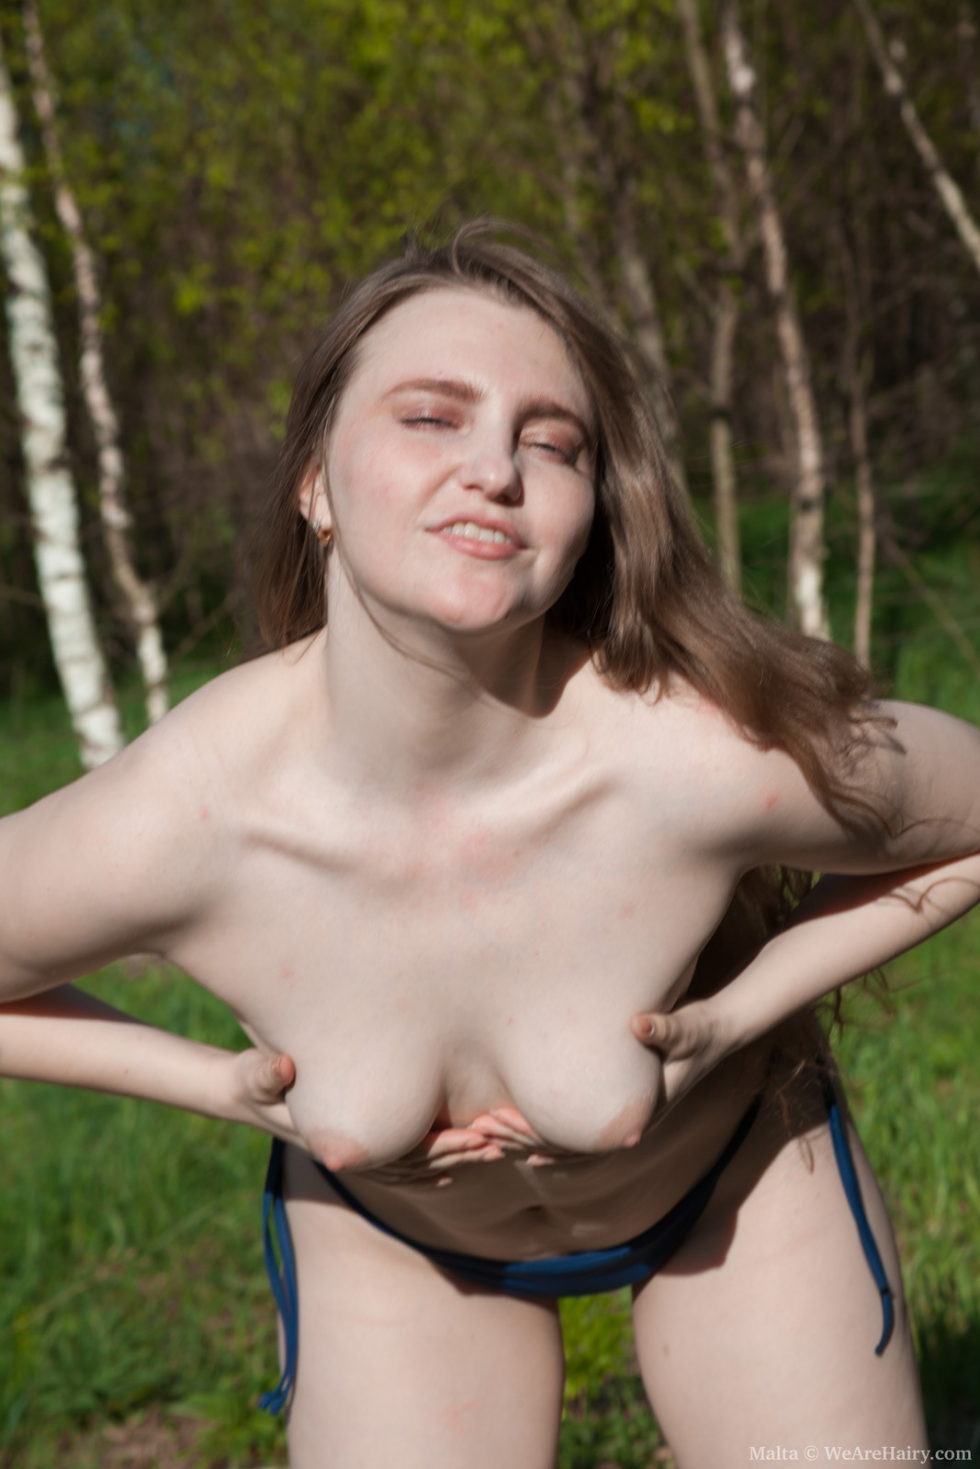 Wara strips naked to show her hairy body off today - 2 part 4